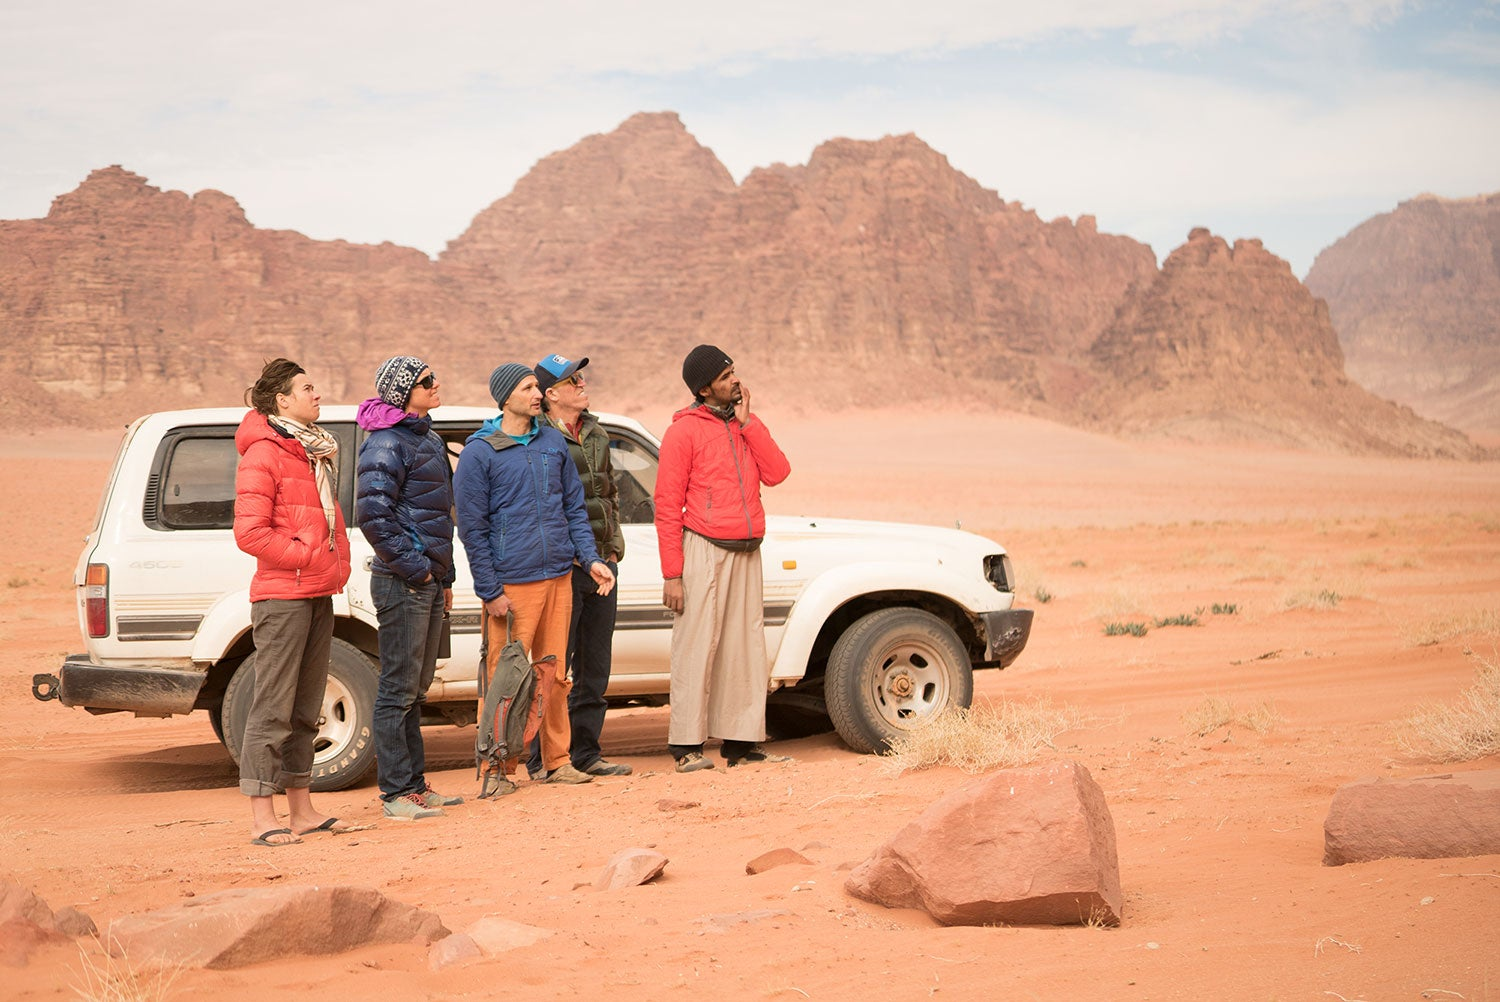 Five people standing in a red desert landscape next to a white SUV.